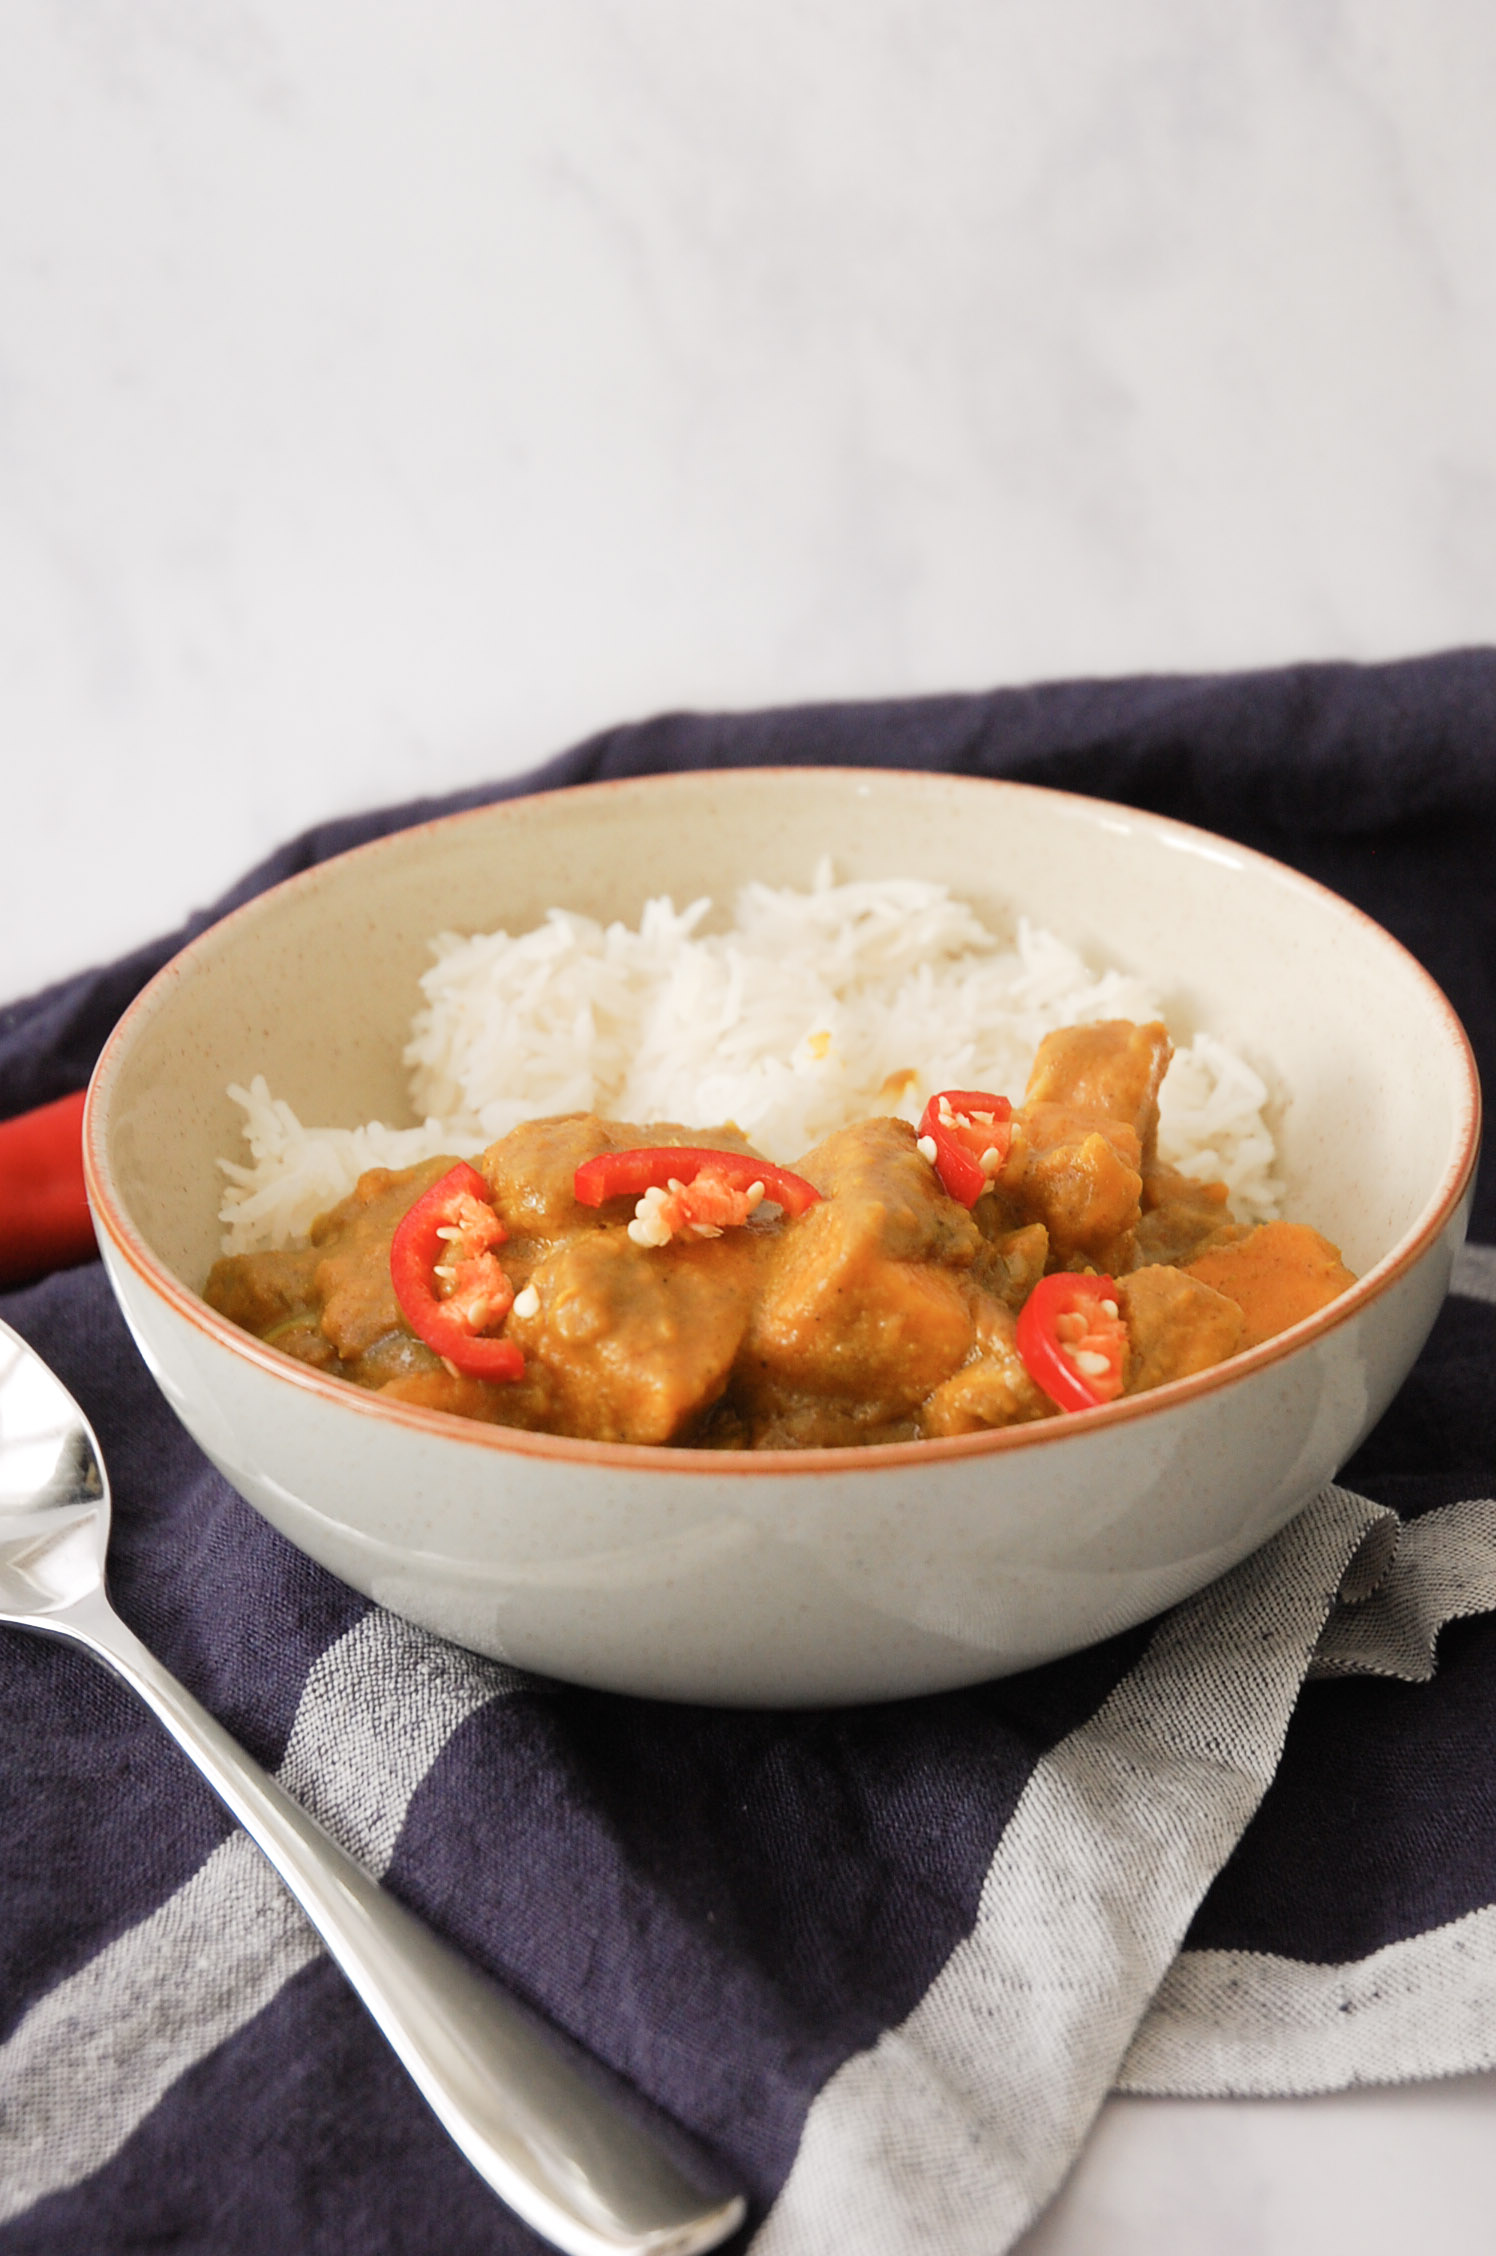 sweet potato curry in a grey bowl with a spoon on the left